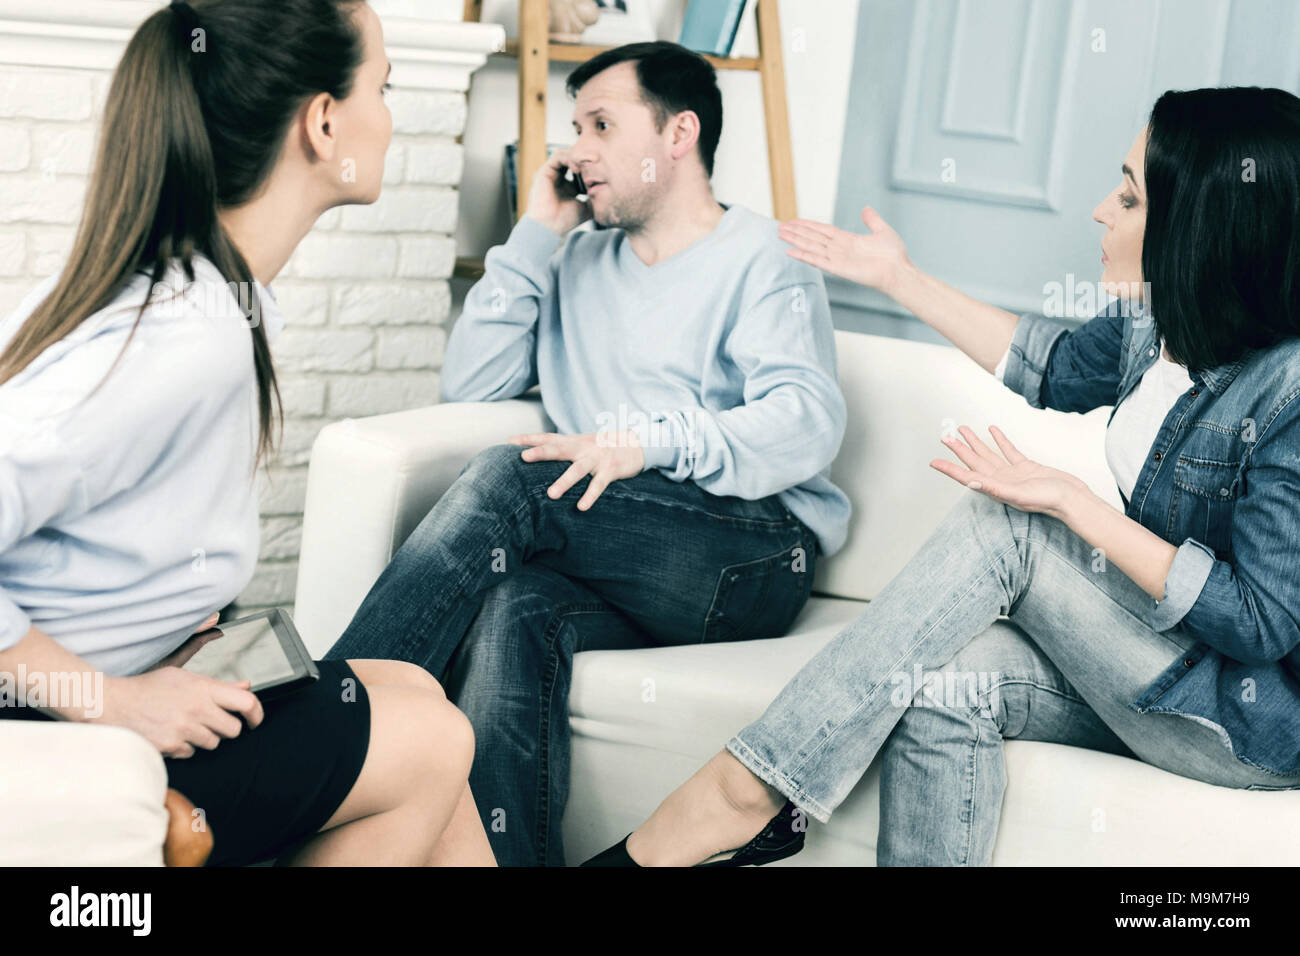 Busy man talking on telephone while being at family consultation - Stock Image